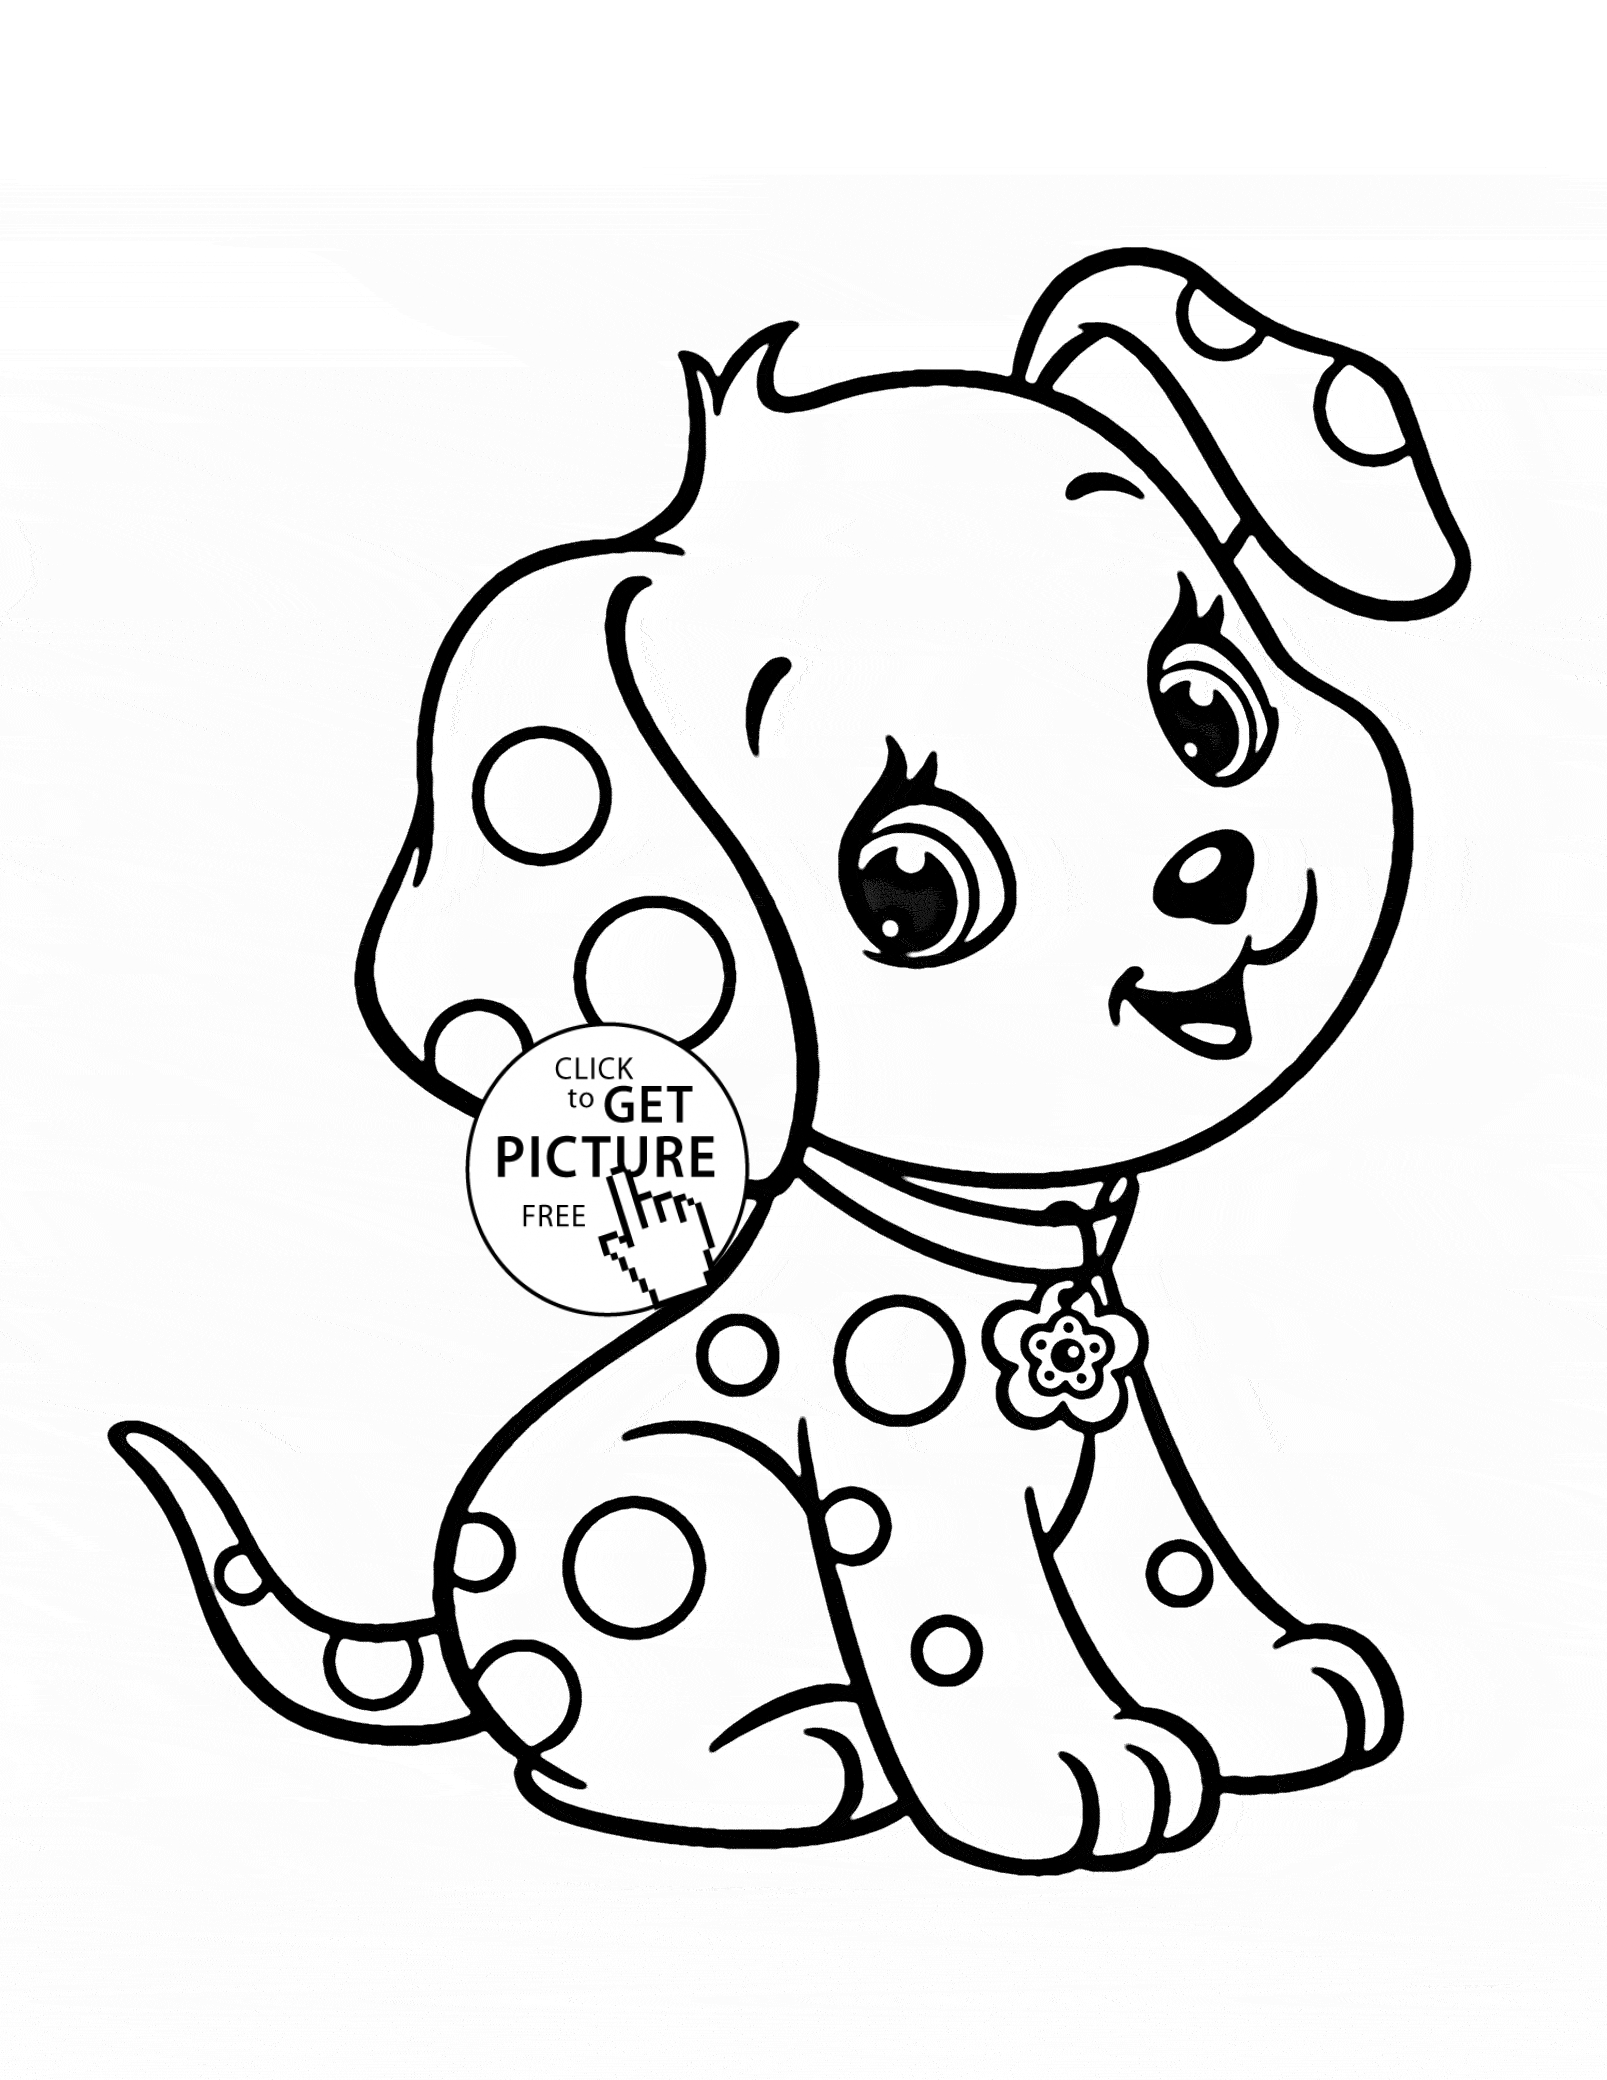 Cartoon Puppy Coloring Pages to Print